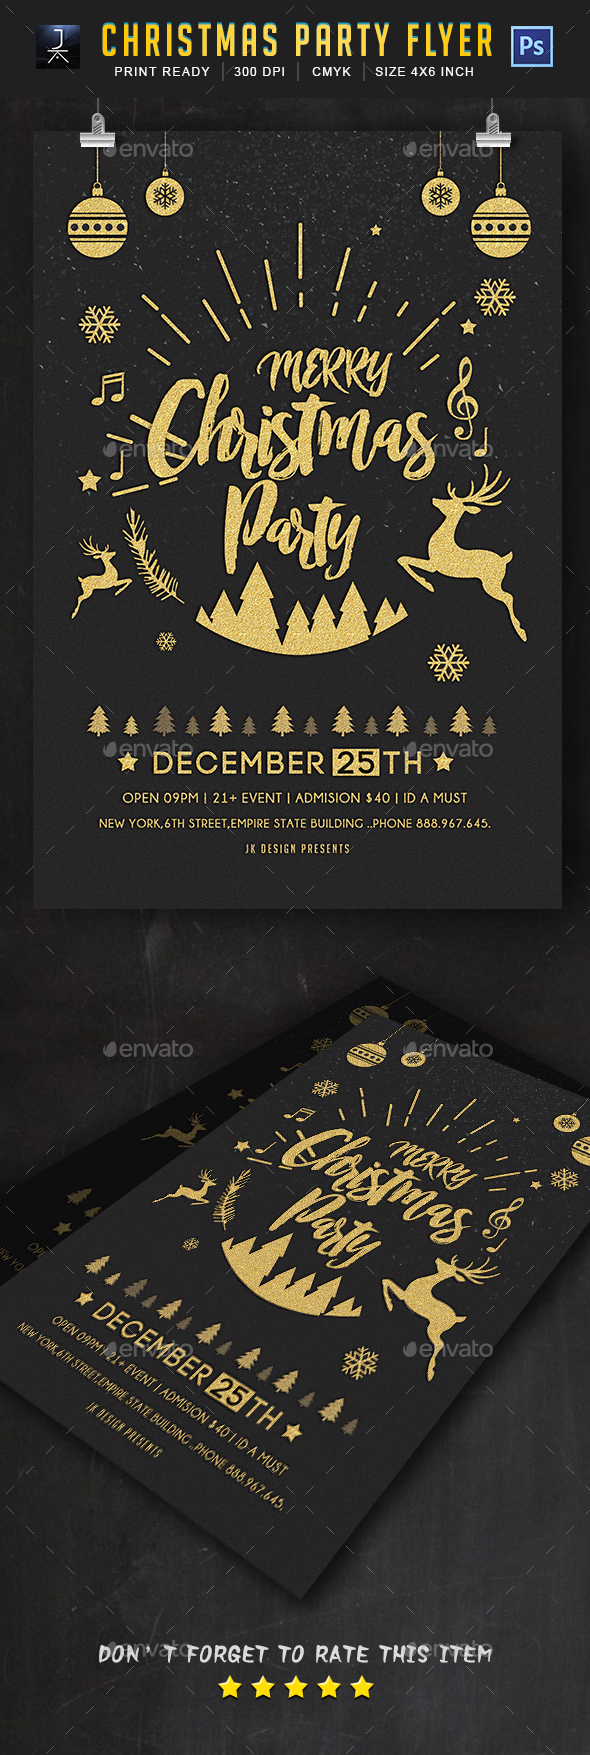 Christmas Flyer - Print Templates